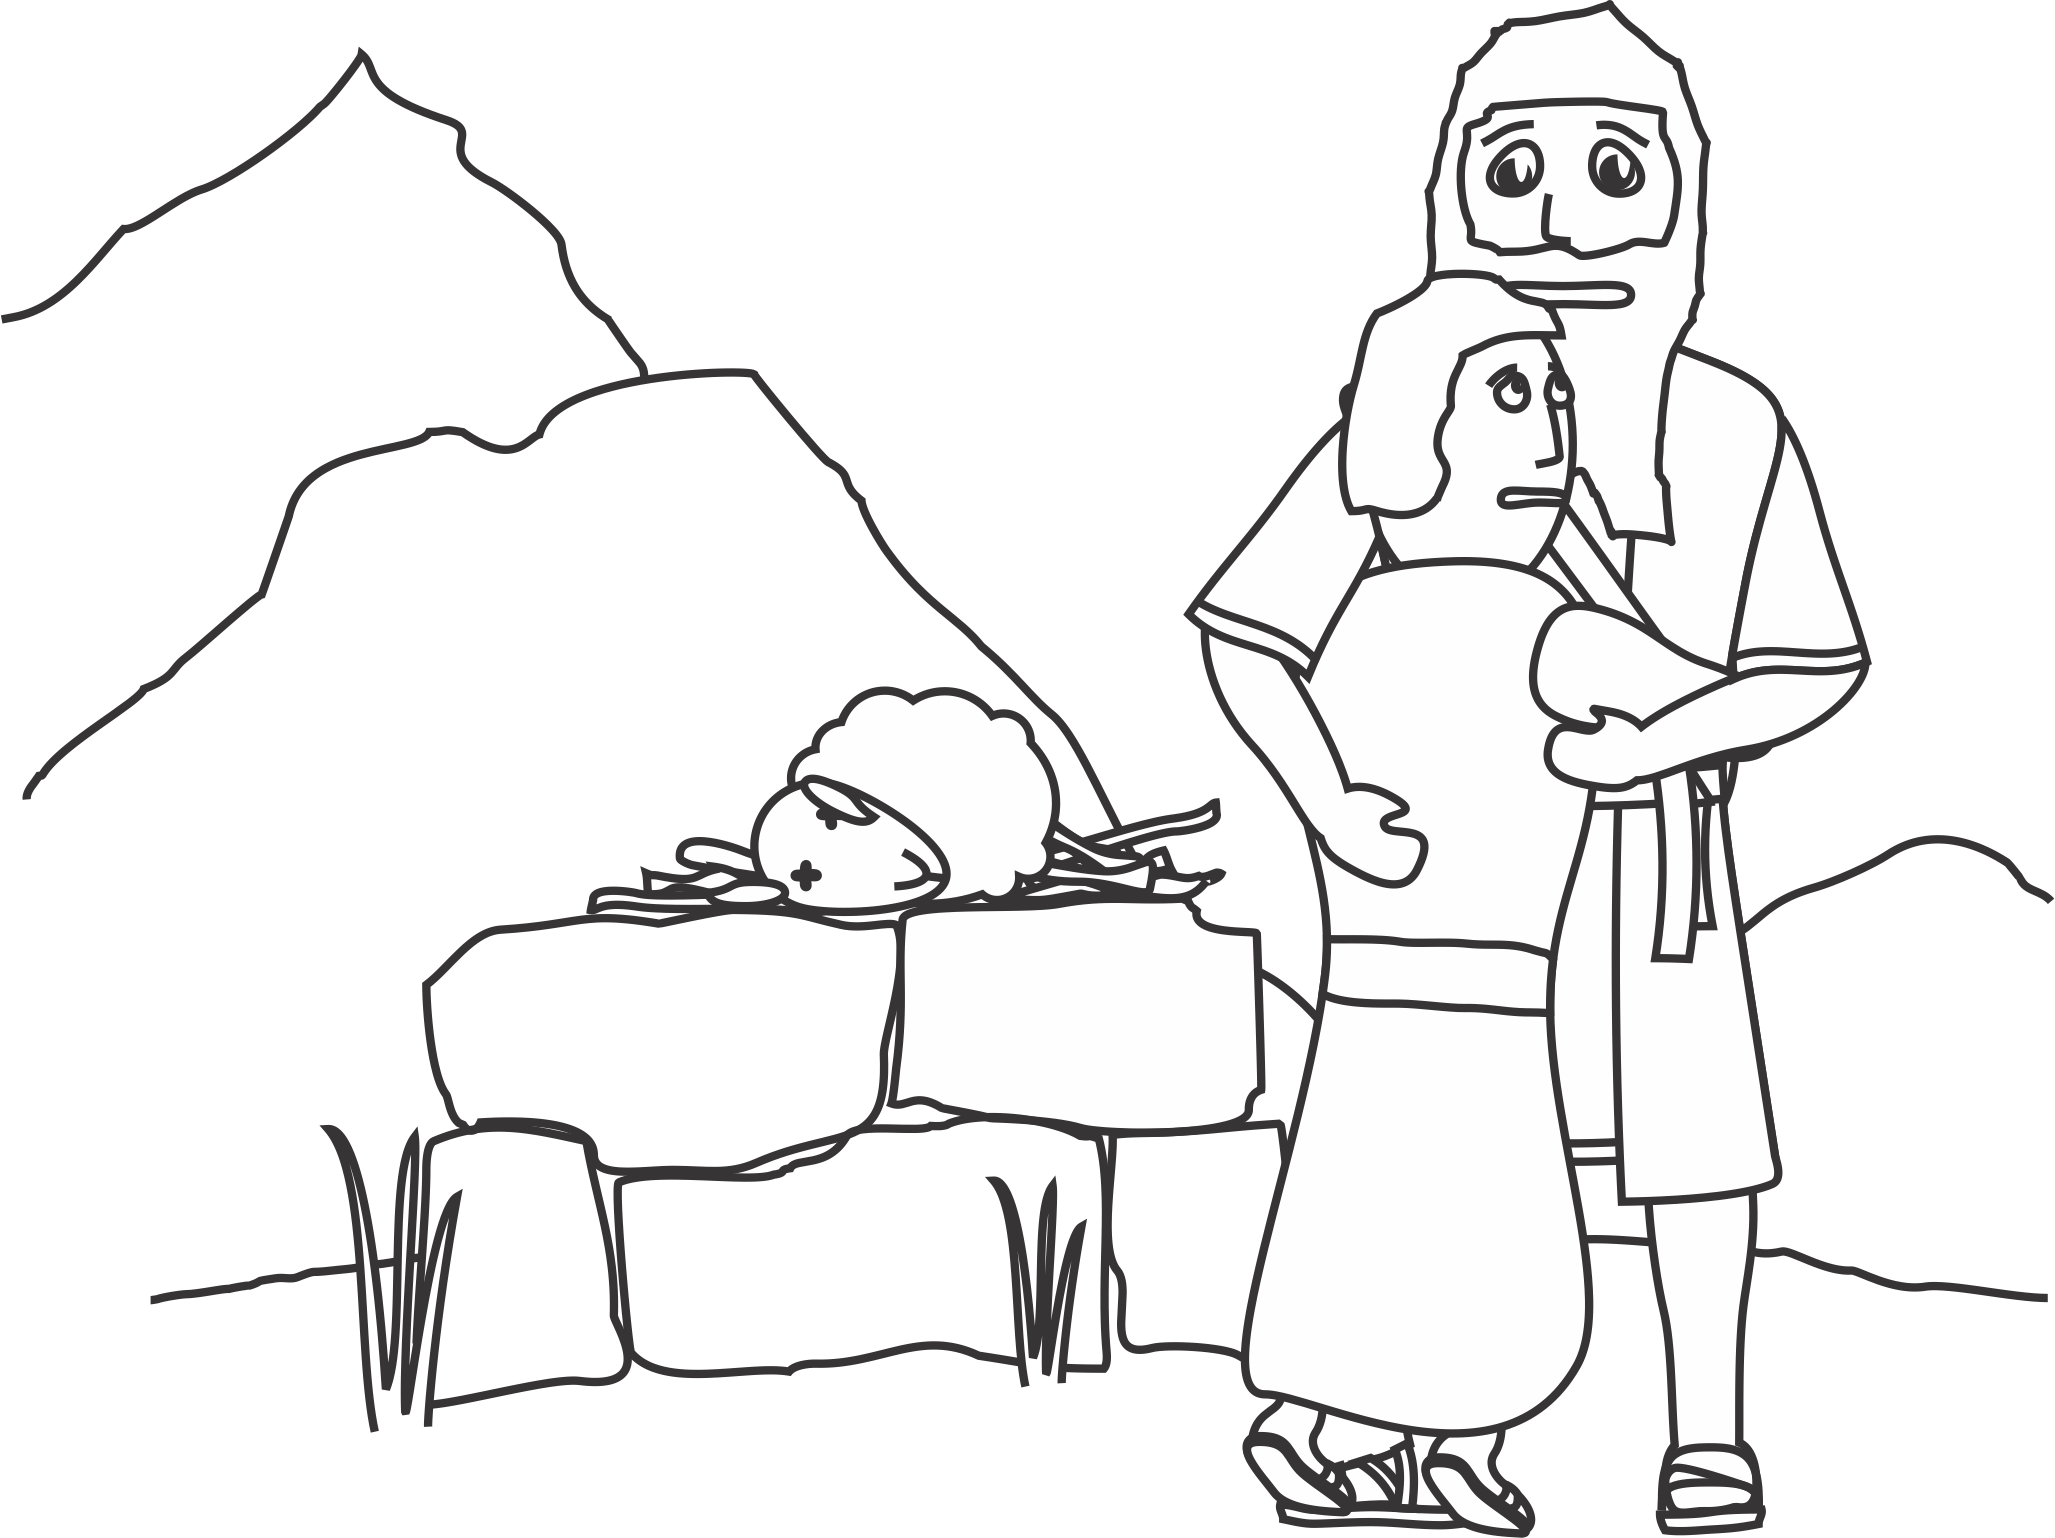 Clip Art Isaac And Rebekah Coloring Pages 1000 images about our bible coloring pages on pinterest my children curriculum and pages